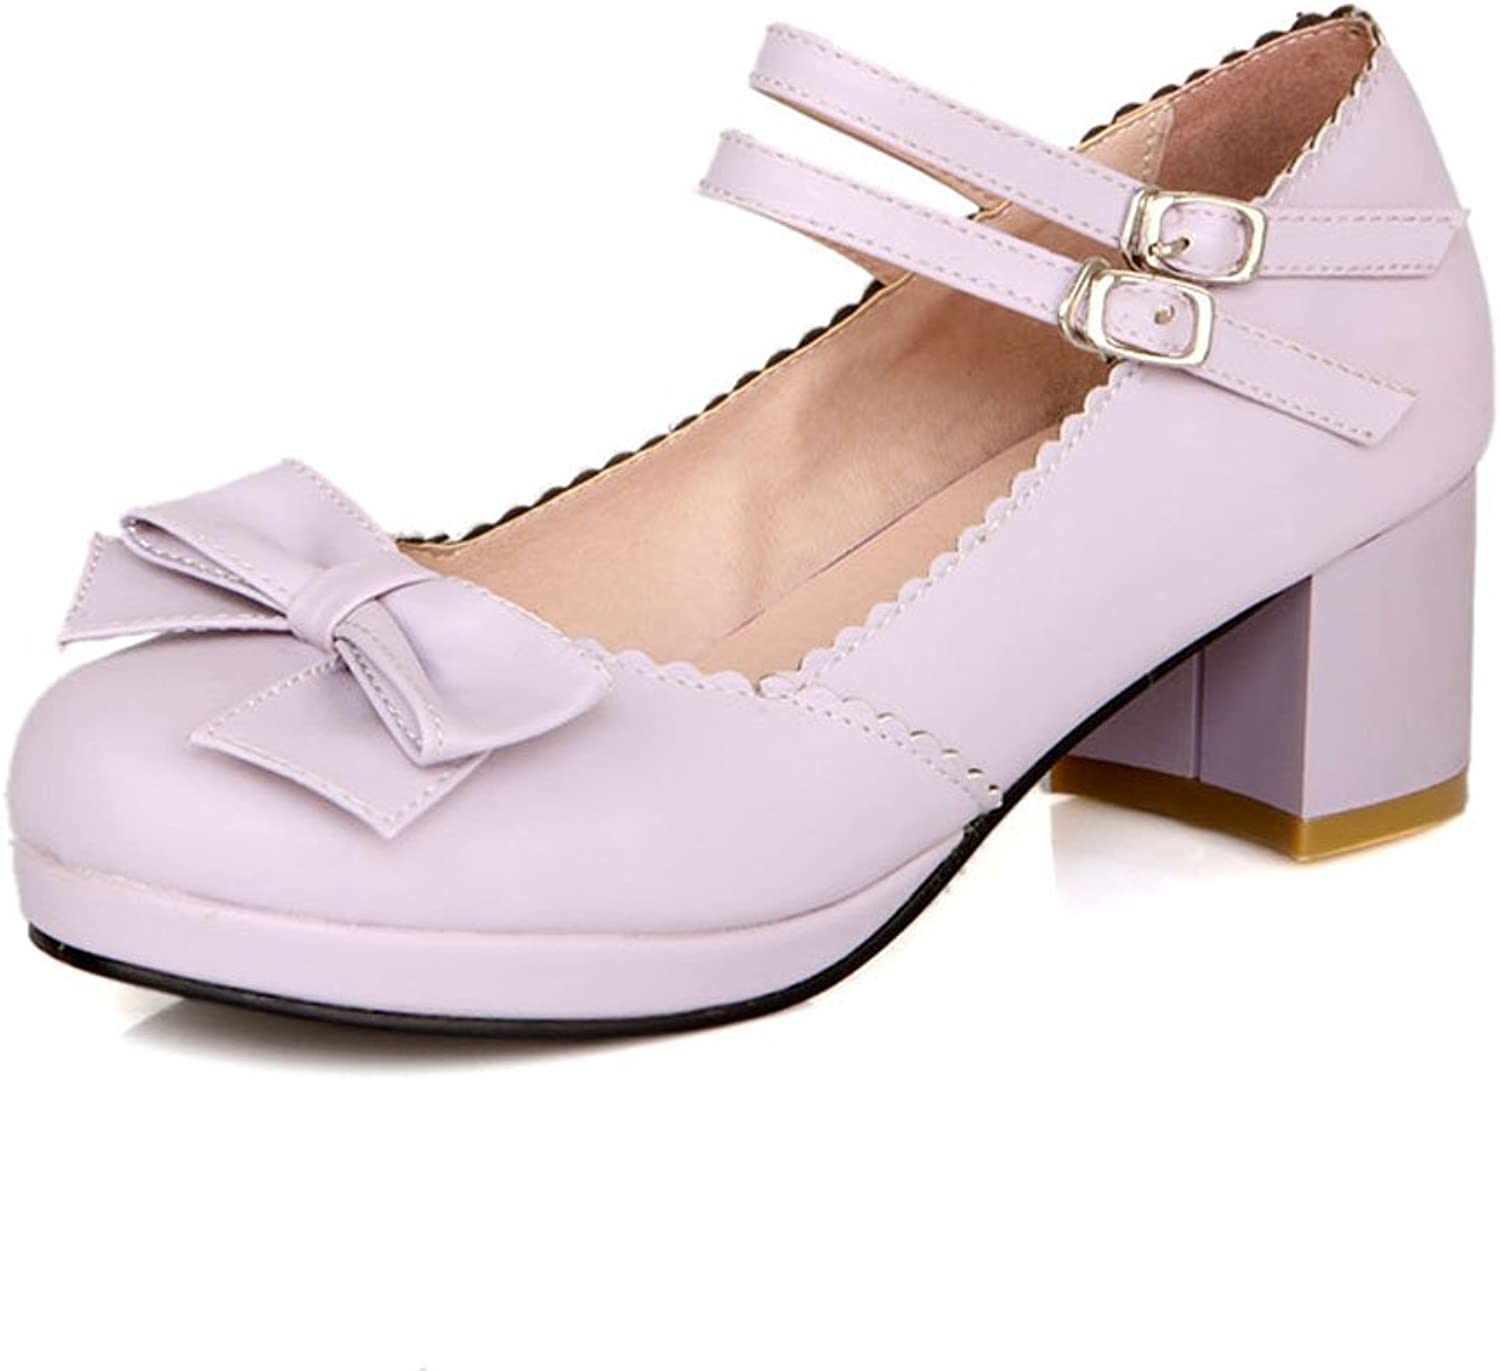 Lucksender Womens Round Toe Mid Heel Mary Jane shoes with Cute Bowknot